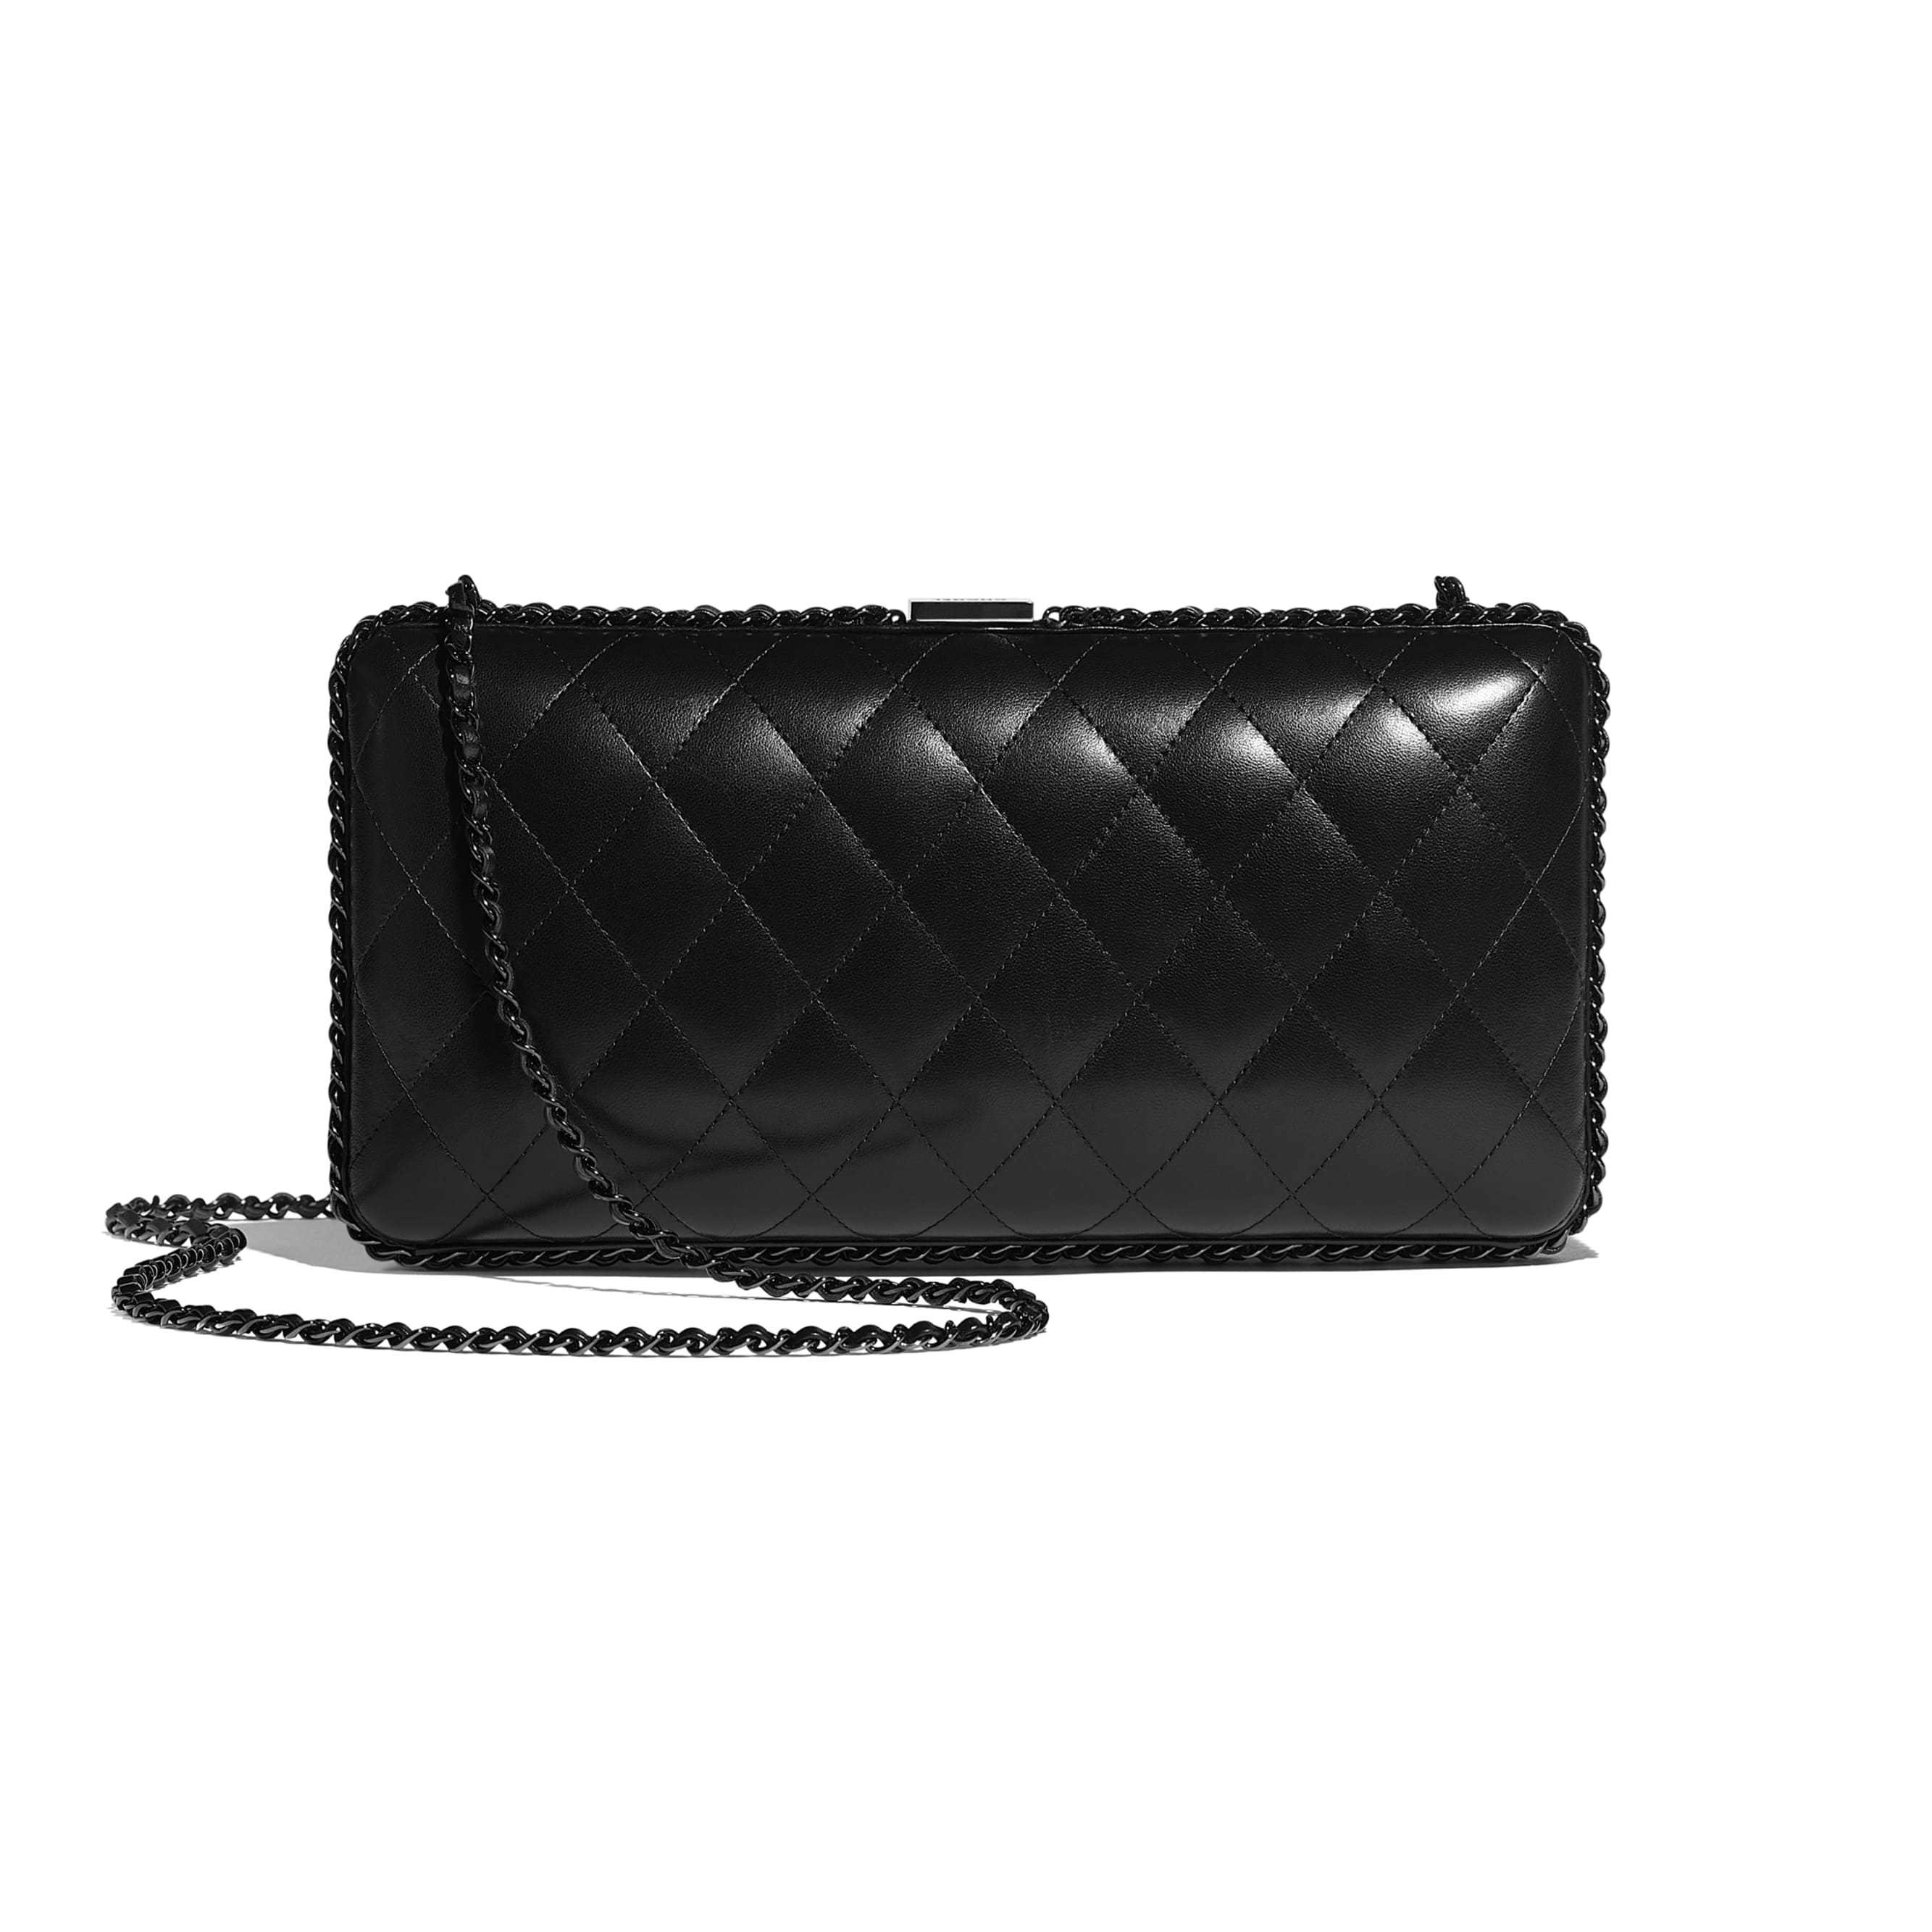 Evening Bag - Black - Lambskin - CHANEL - Alternative view - see standard sized version